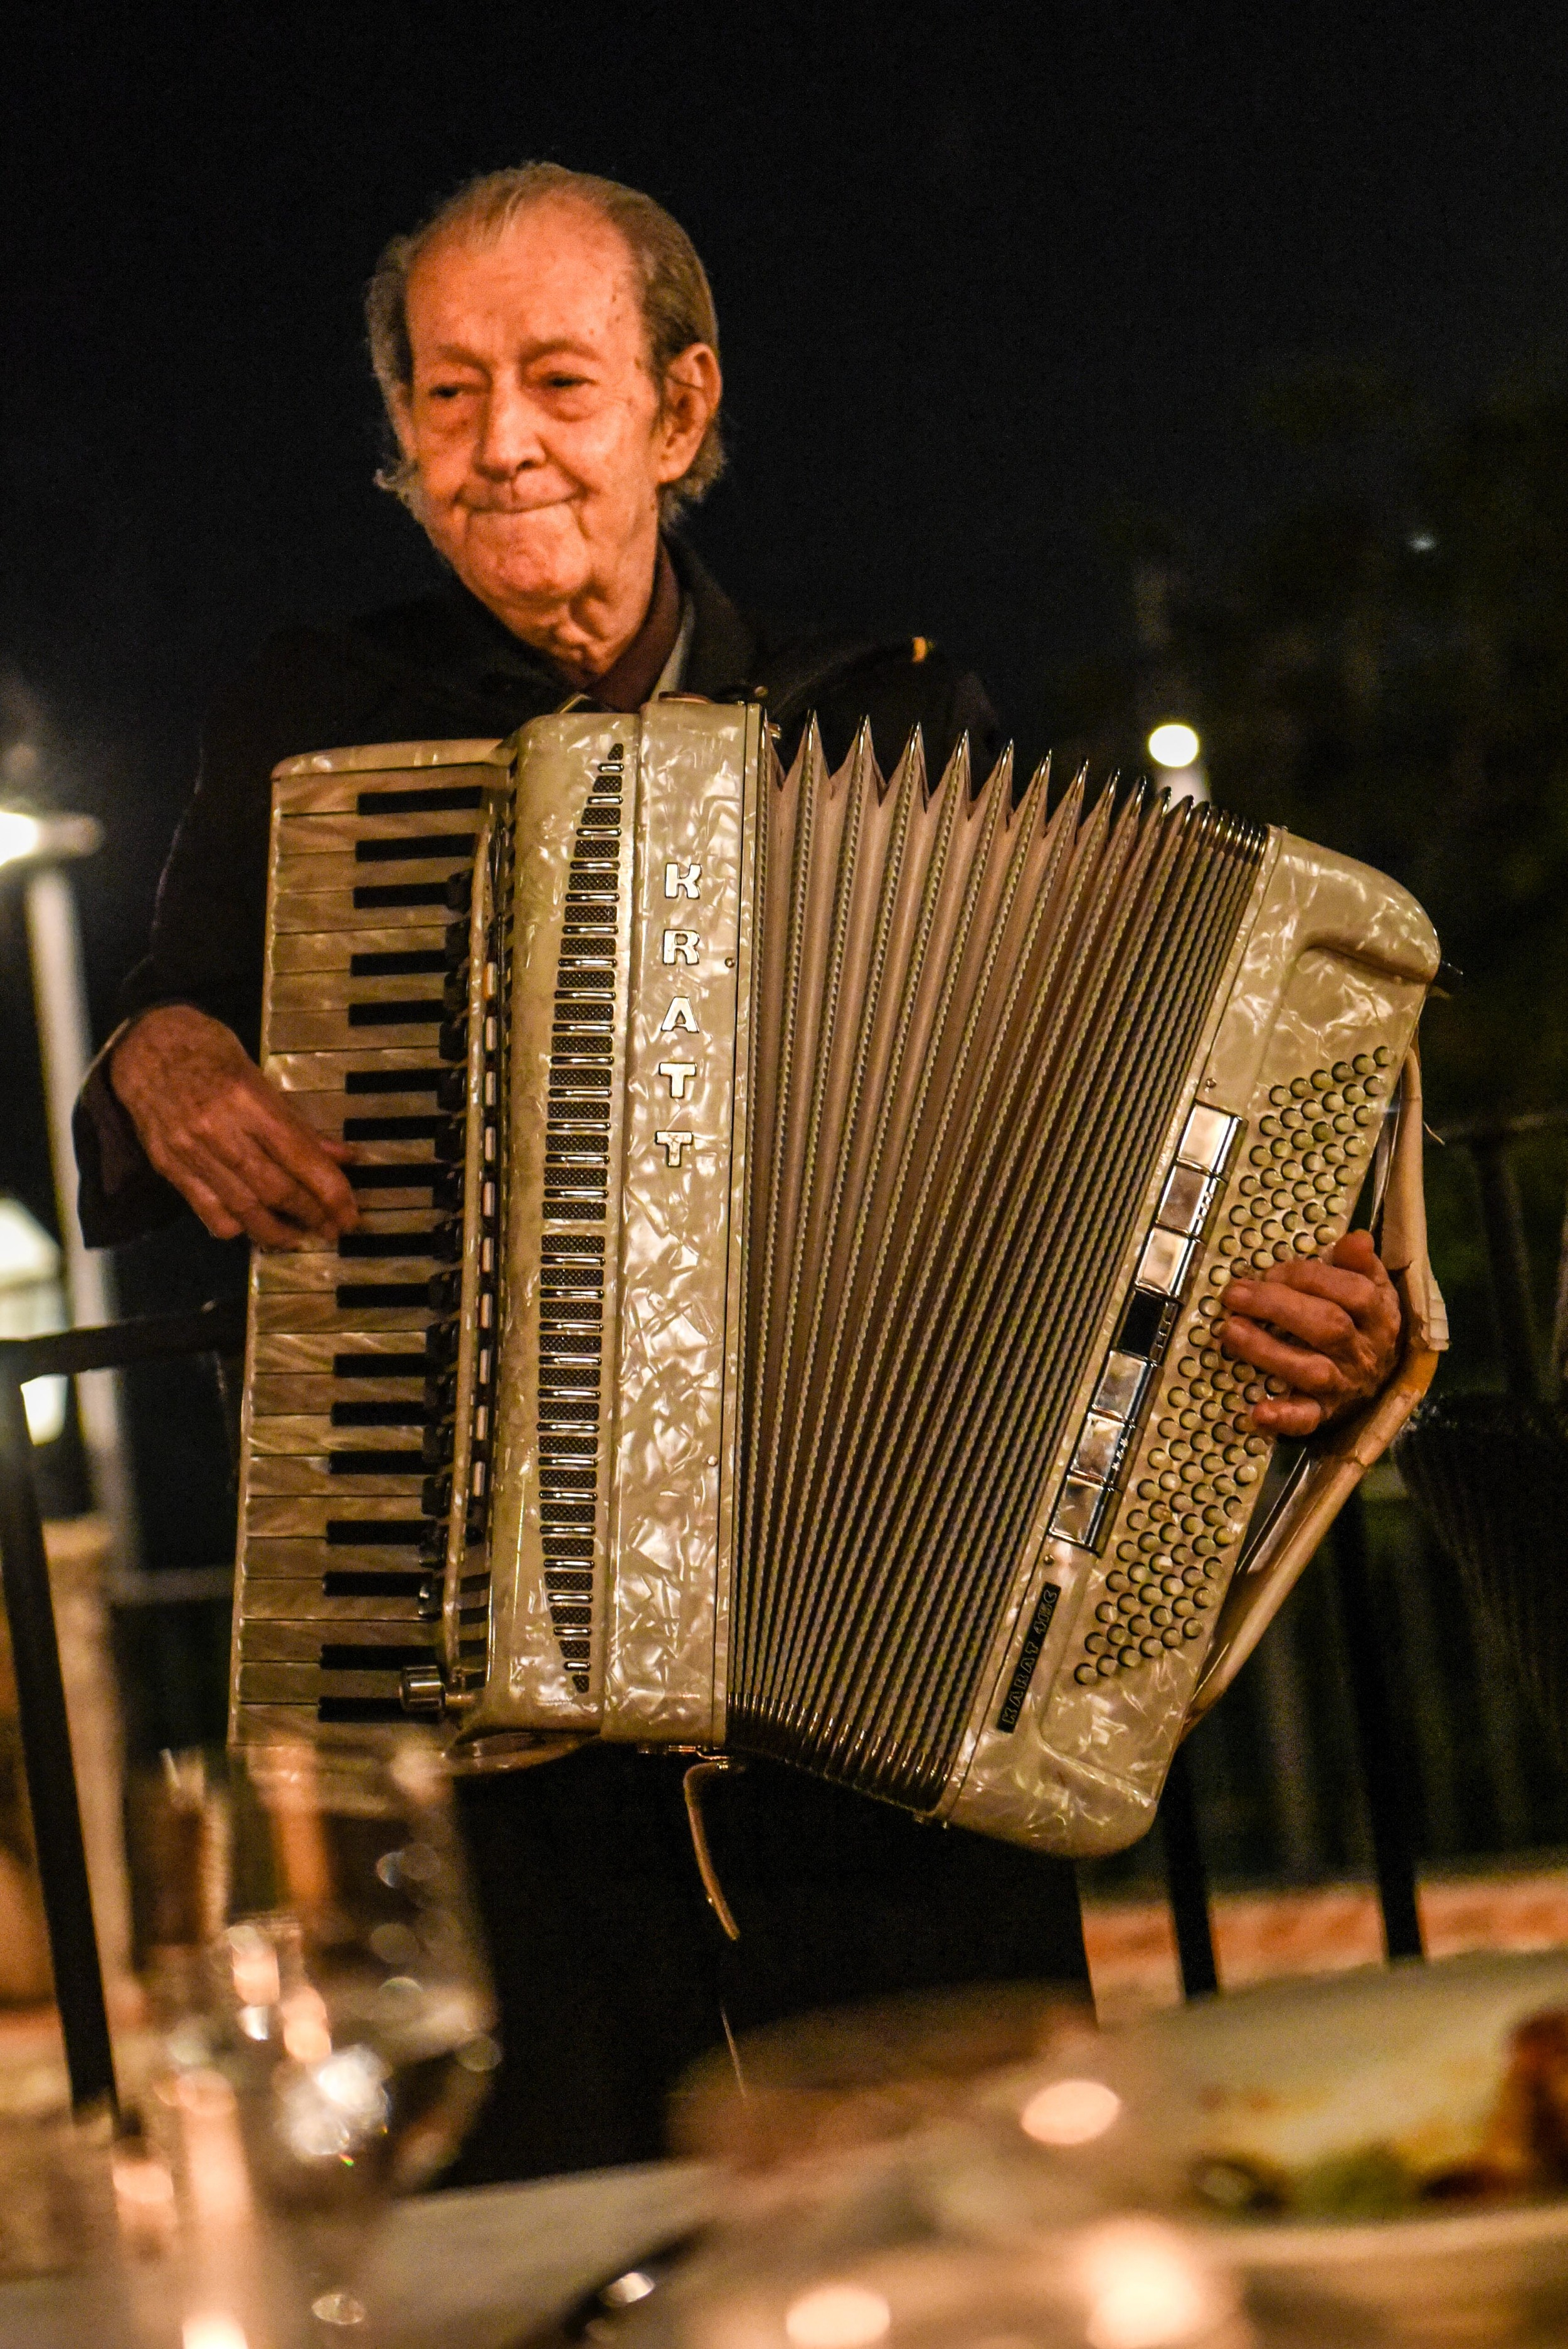 This man is 97 years old. He plays the accordion 6 days a week. Life goals please.